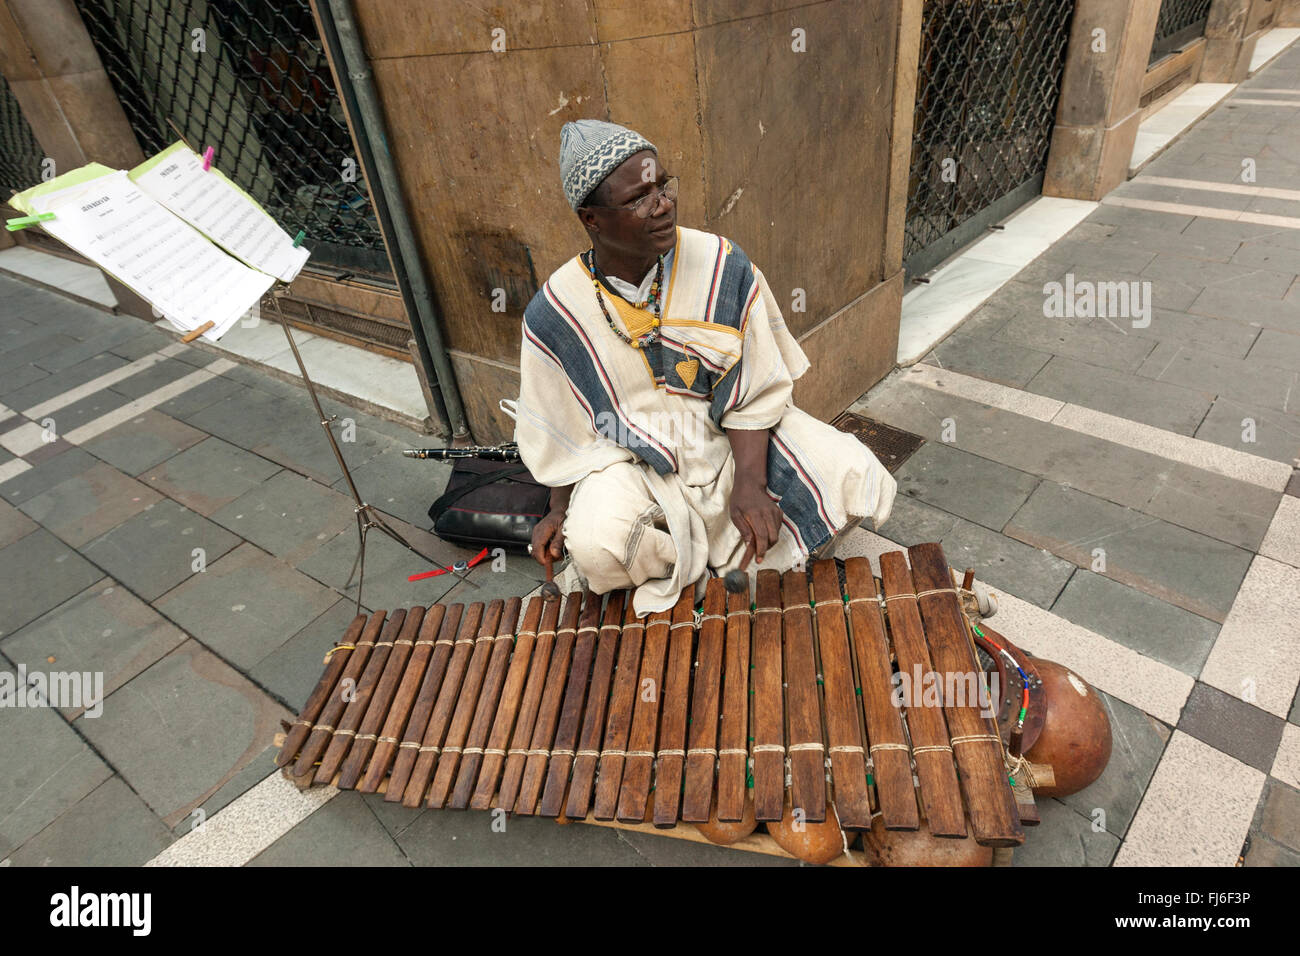 african-busker-playing-the-balafon-is-a-